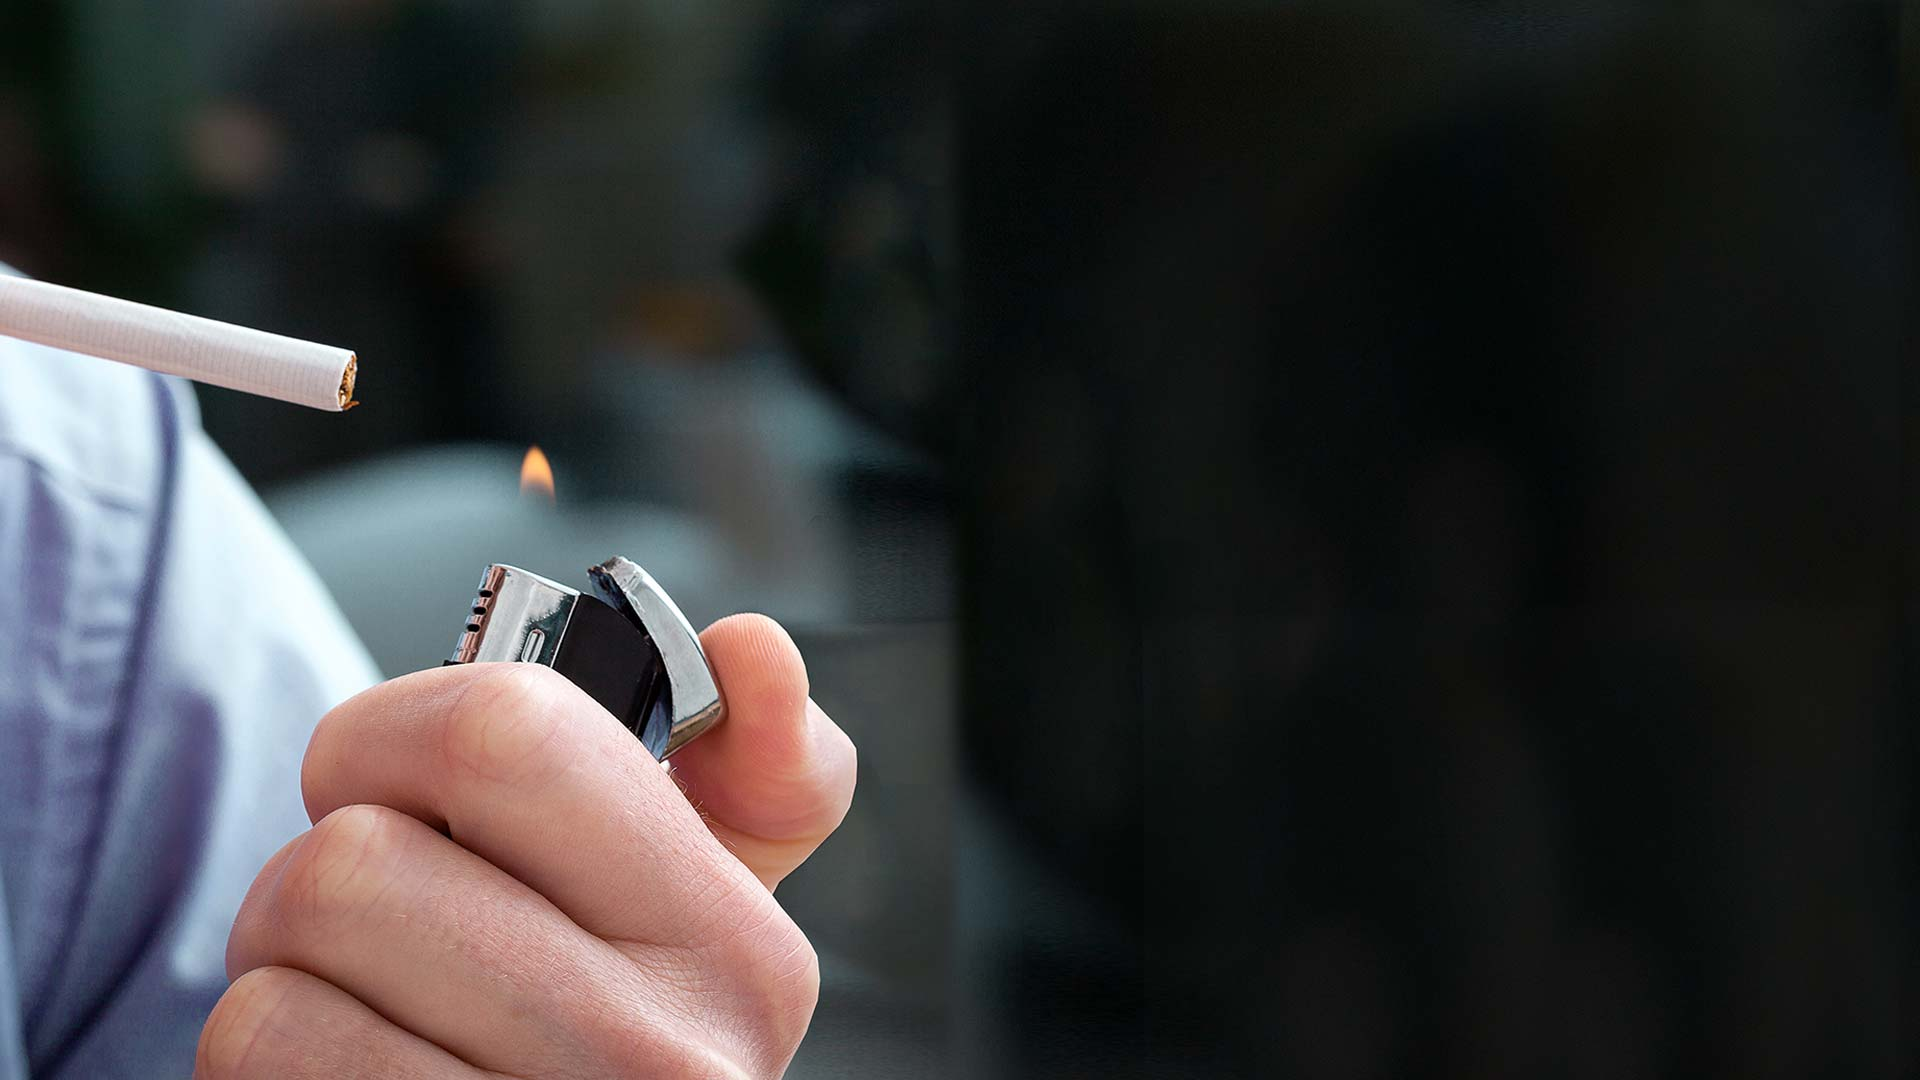 Smoking is linked to cancer